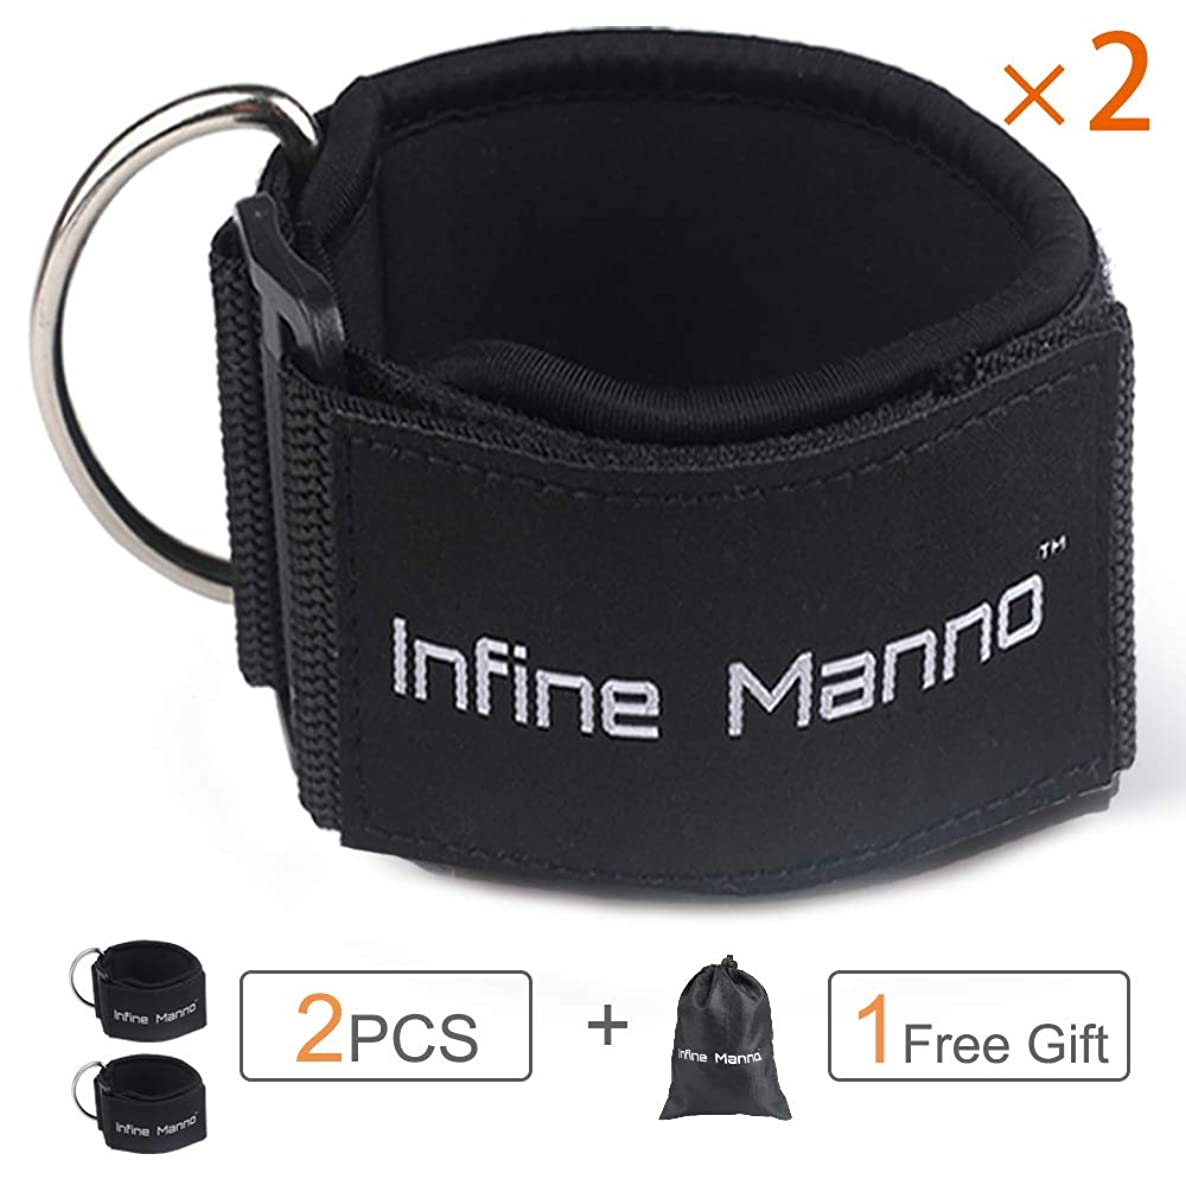 Infine Manno Ankle Straps for Cable Machines, 2PCS Adjustable Double Rings Straps with Comfort fit Neoprene for Glute & Leg Workouts - for Women & Men qjsqabldjcsljhcf